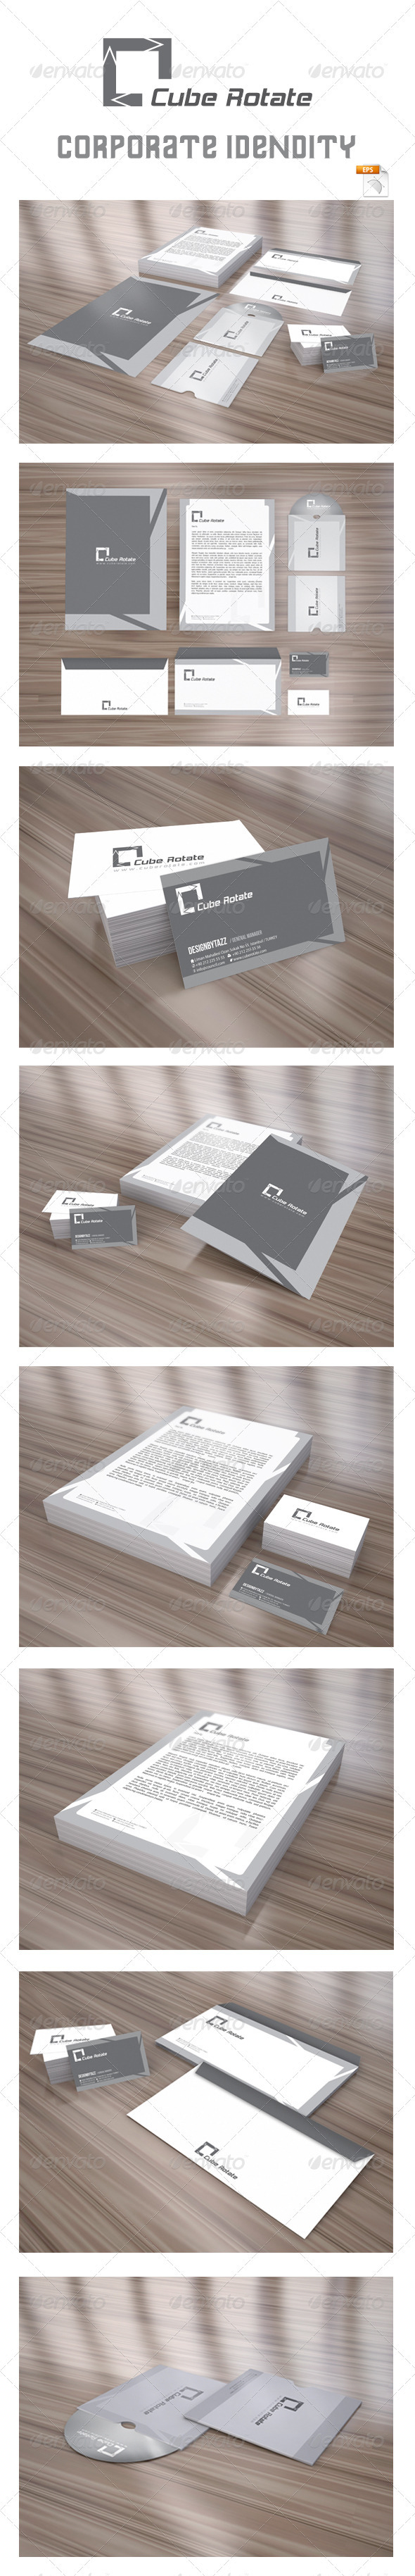 Cube Rotate Corporate Identity Package - Stationery Print Templates